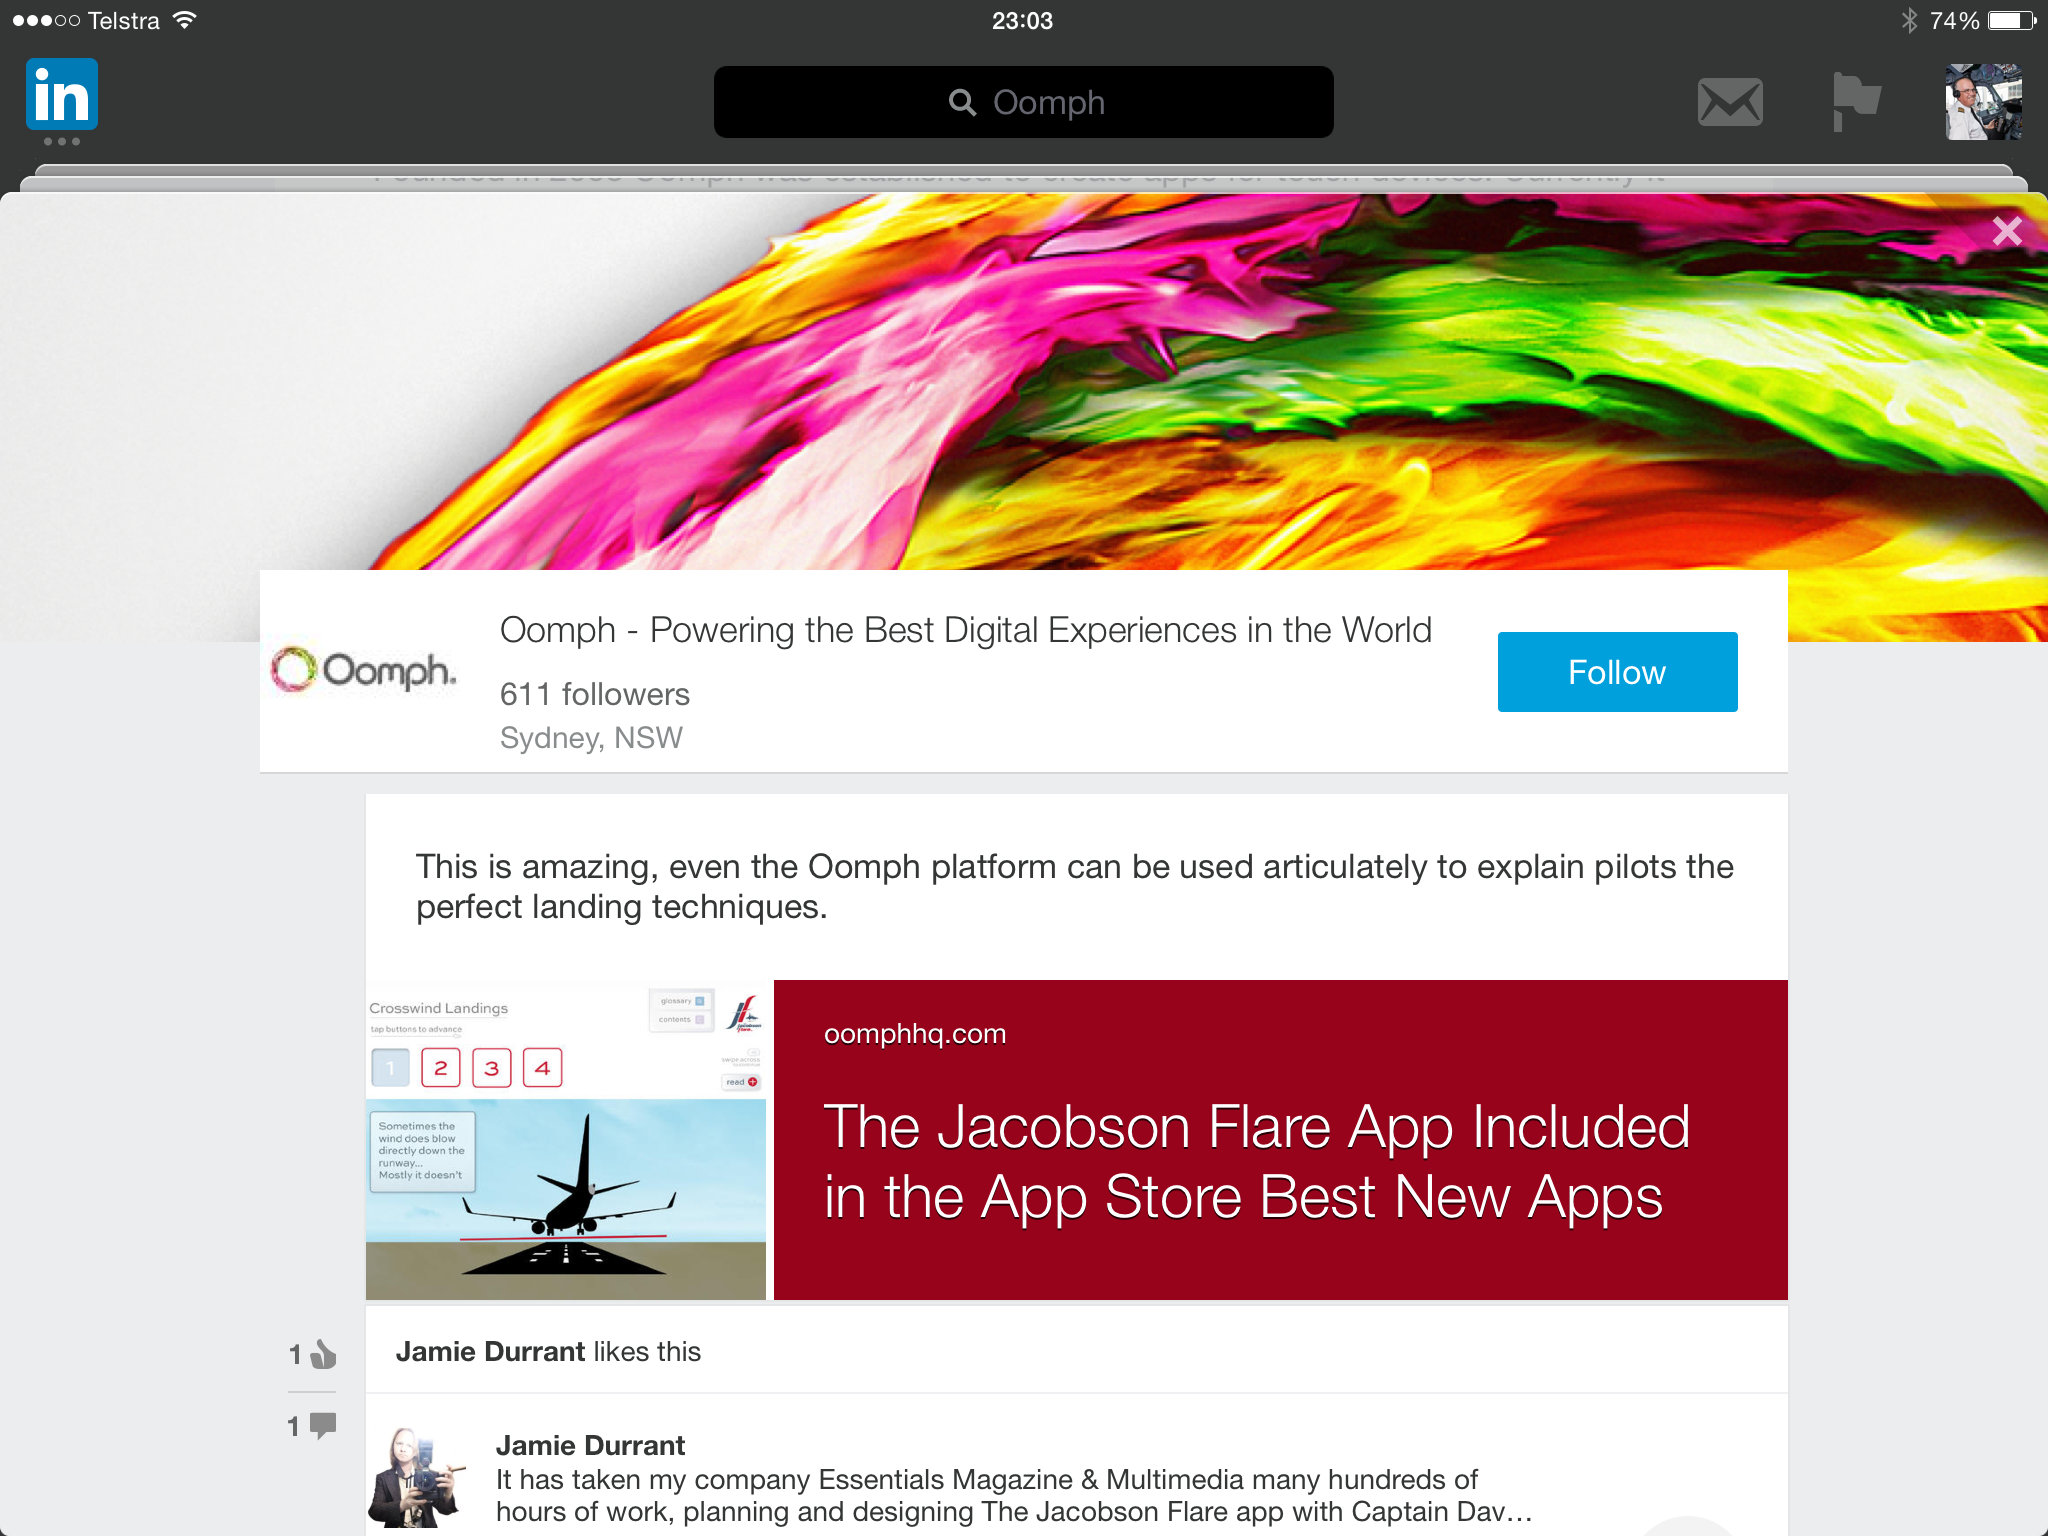 Oomph on LinkedIn for the Jacobson Flare